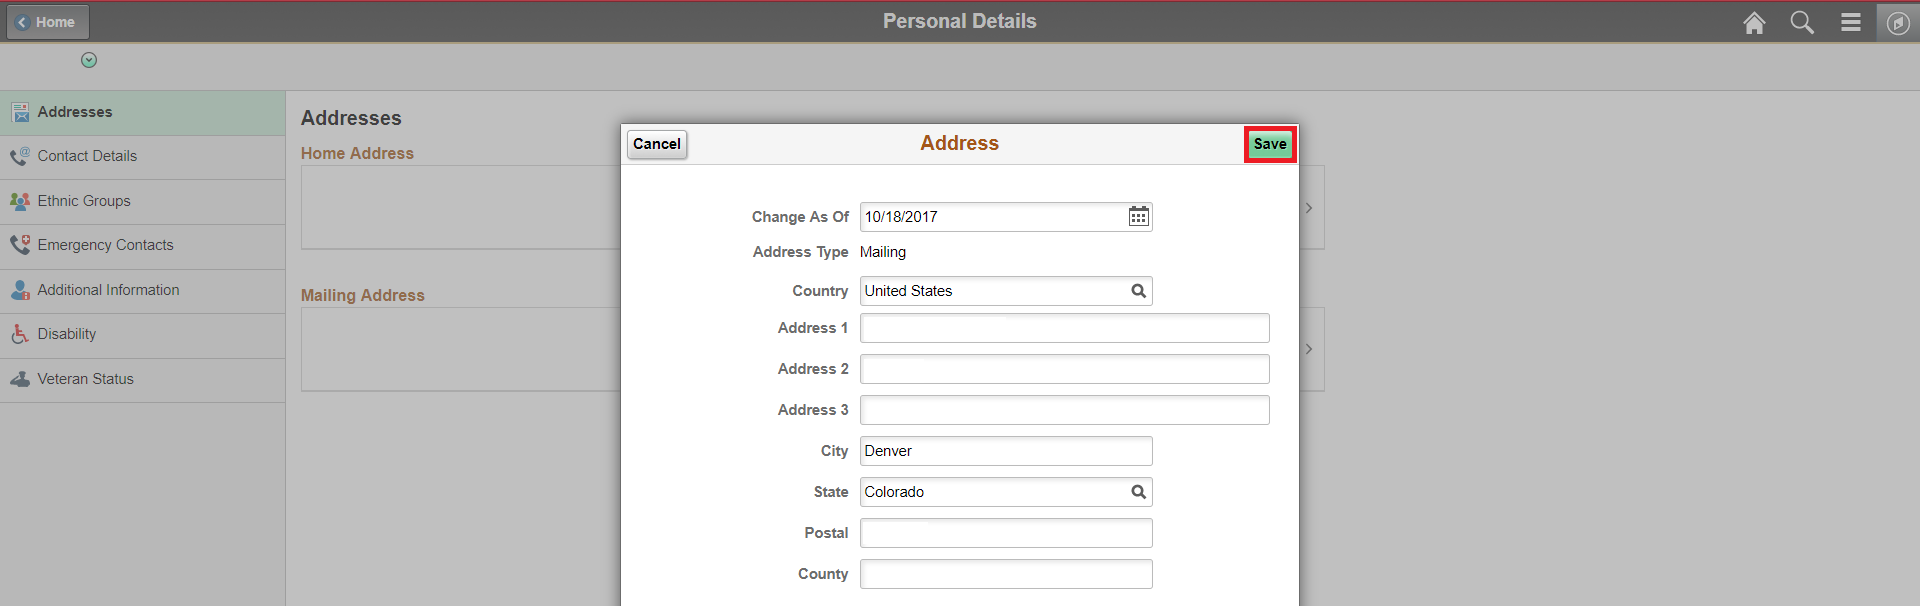 Personal Details Address Page